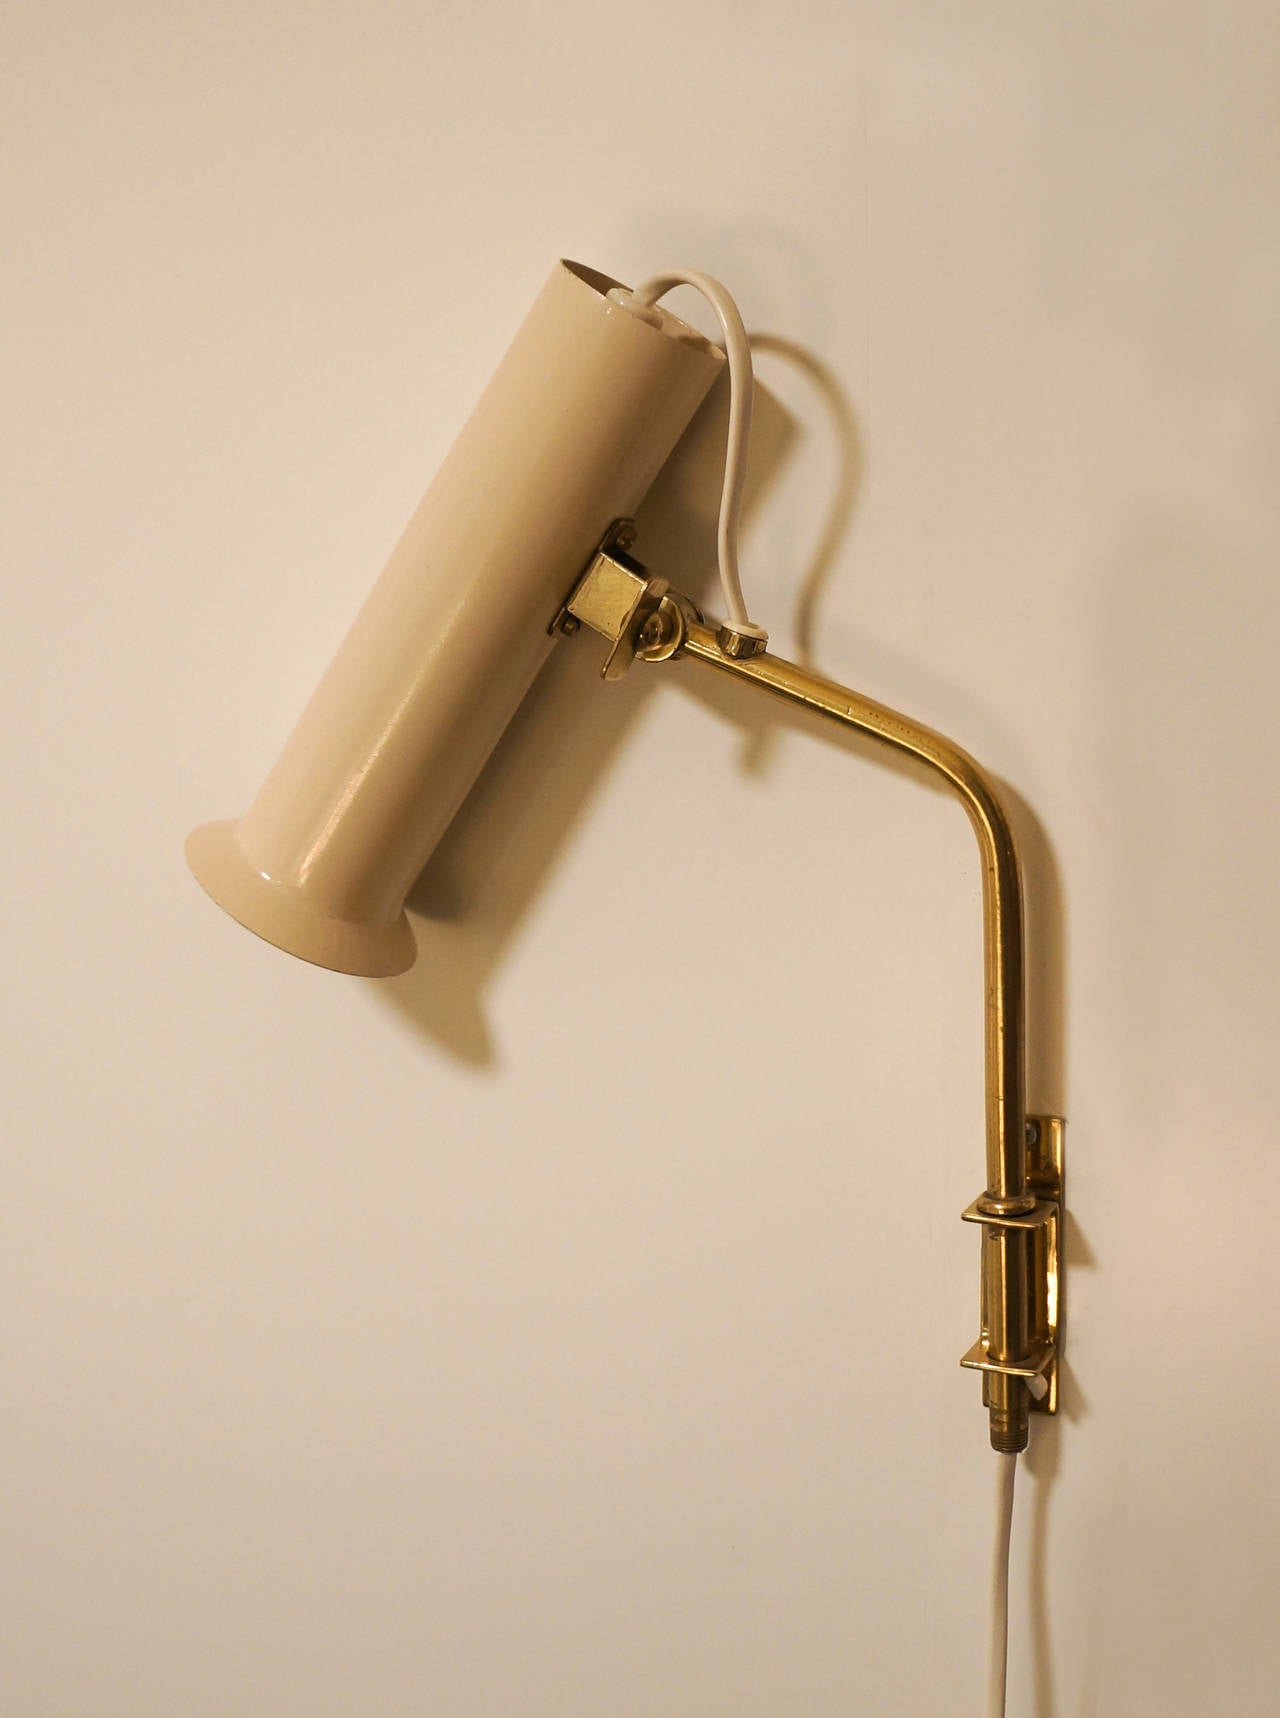 Tapio Wirkkala Adjustable Reading Lamps or Sconces, 1950s In Excellent Condition For Sale In Houston, TX